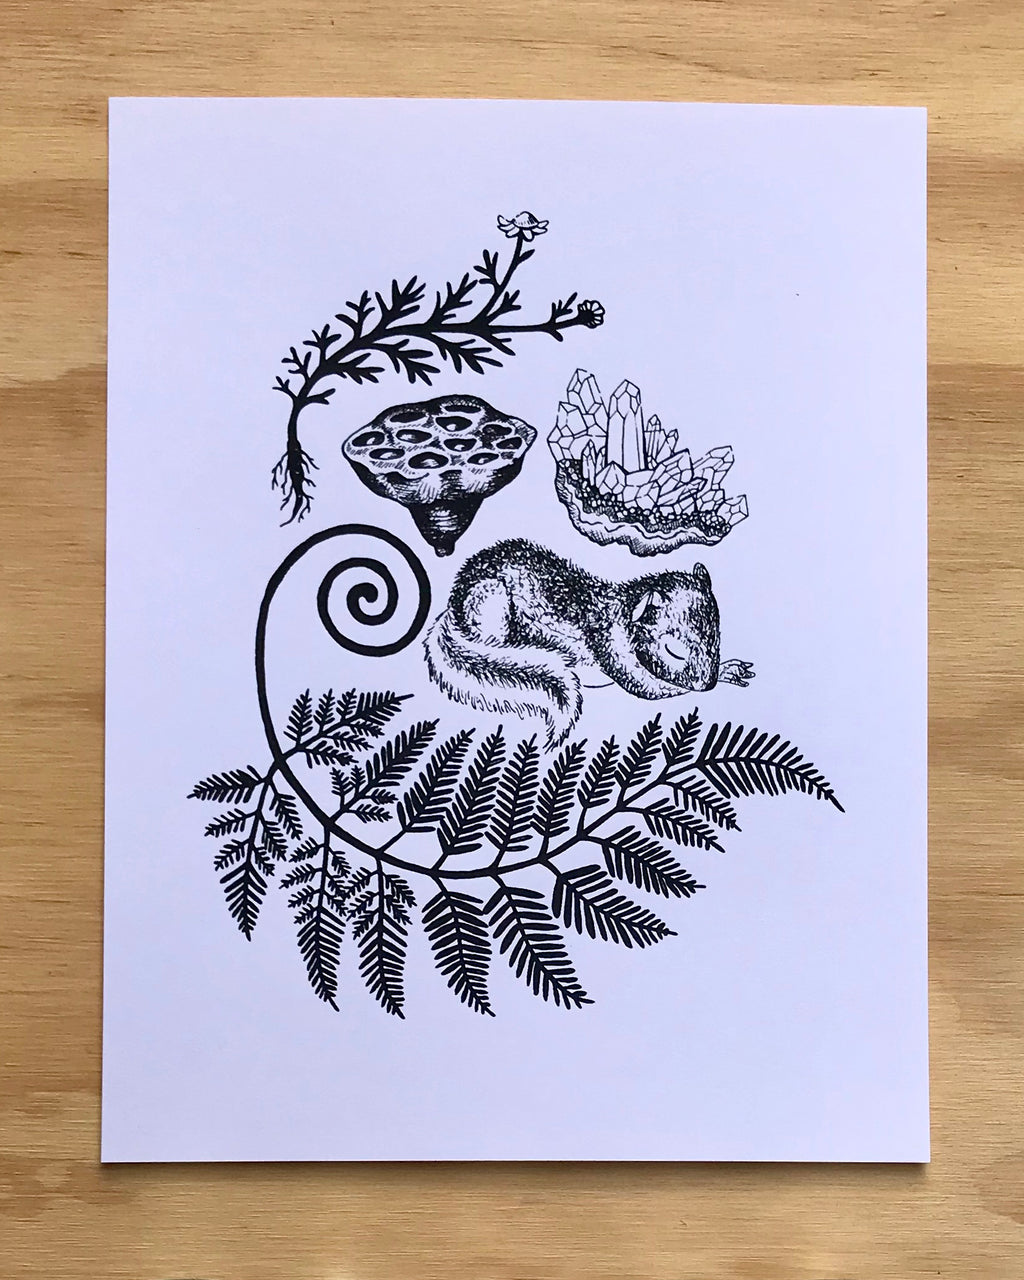 Fern the Sleepy Squirrel Print